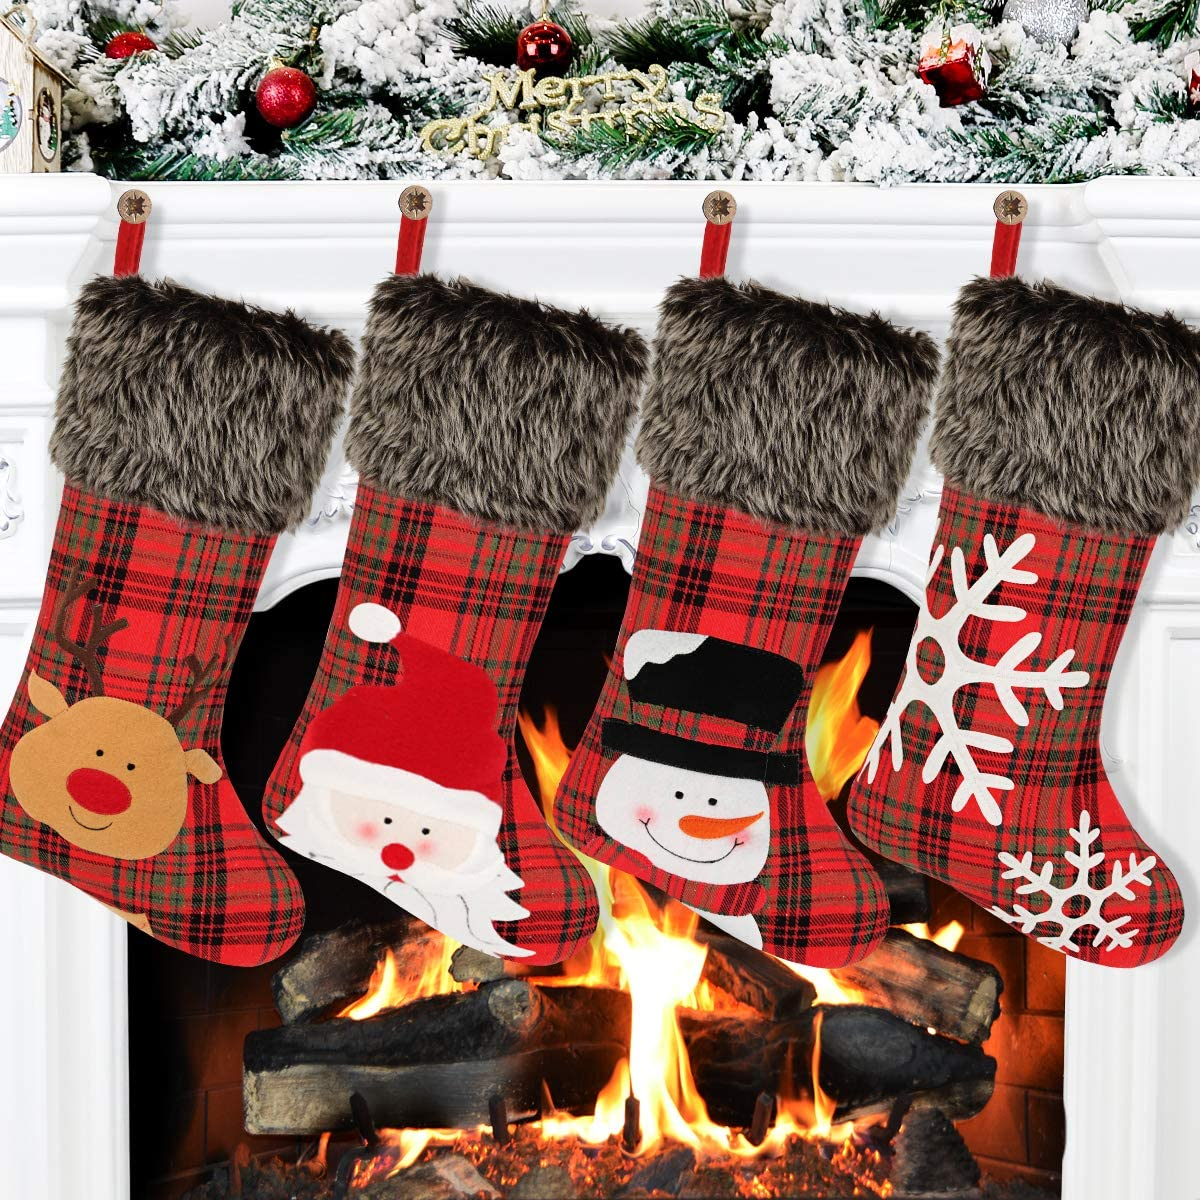 """Aitbay Christmas Stockings, 4 Pack 18"""" Big Xmas Stockings, Burlap Plaid Style with Snowflake Santa Snowman Reindeer and Plush Faux Fur Cuff Family Pack Stockings for Xmas Holiday Party Decor"""